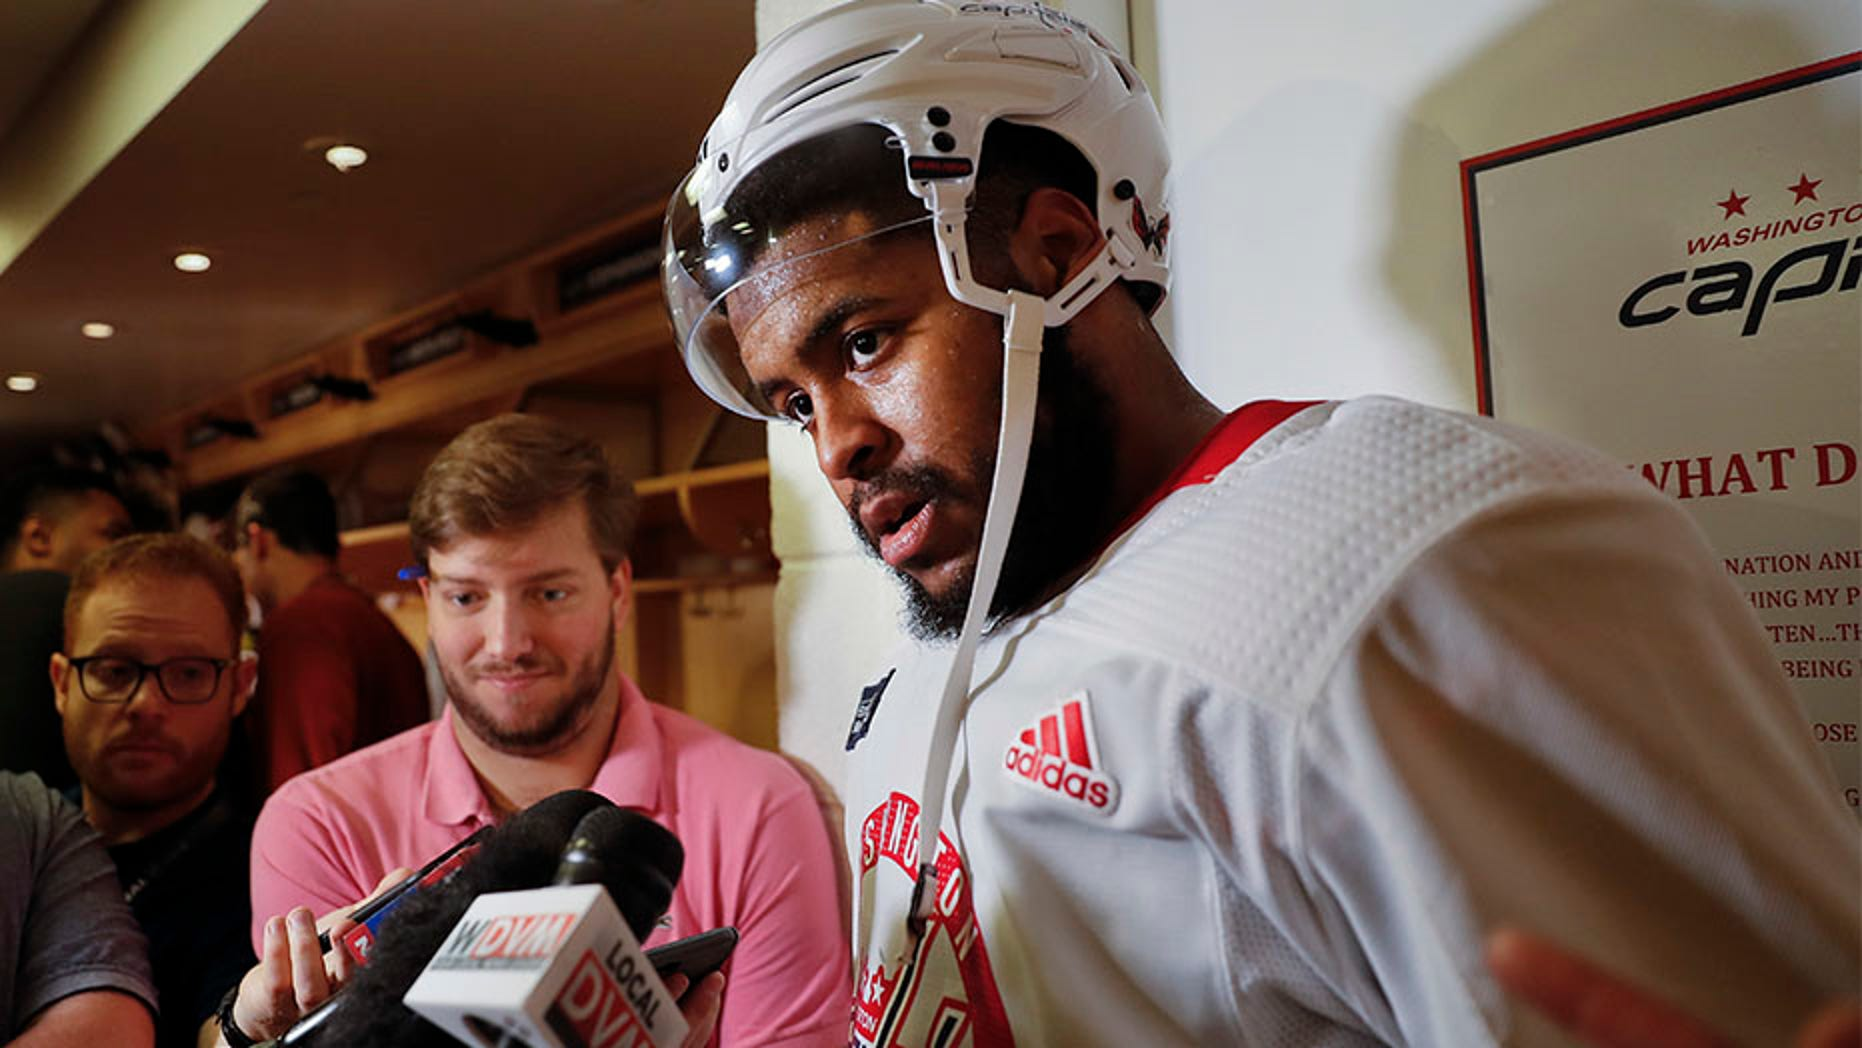 June 1, 2018: Washington Capitals right wing Devante Smith-Pelly, answers questions for members of the media following practice in Arlington, Va.